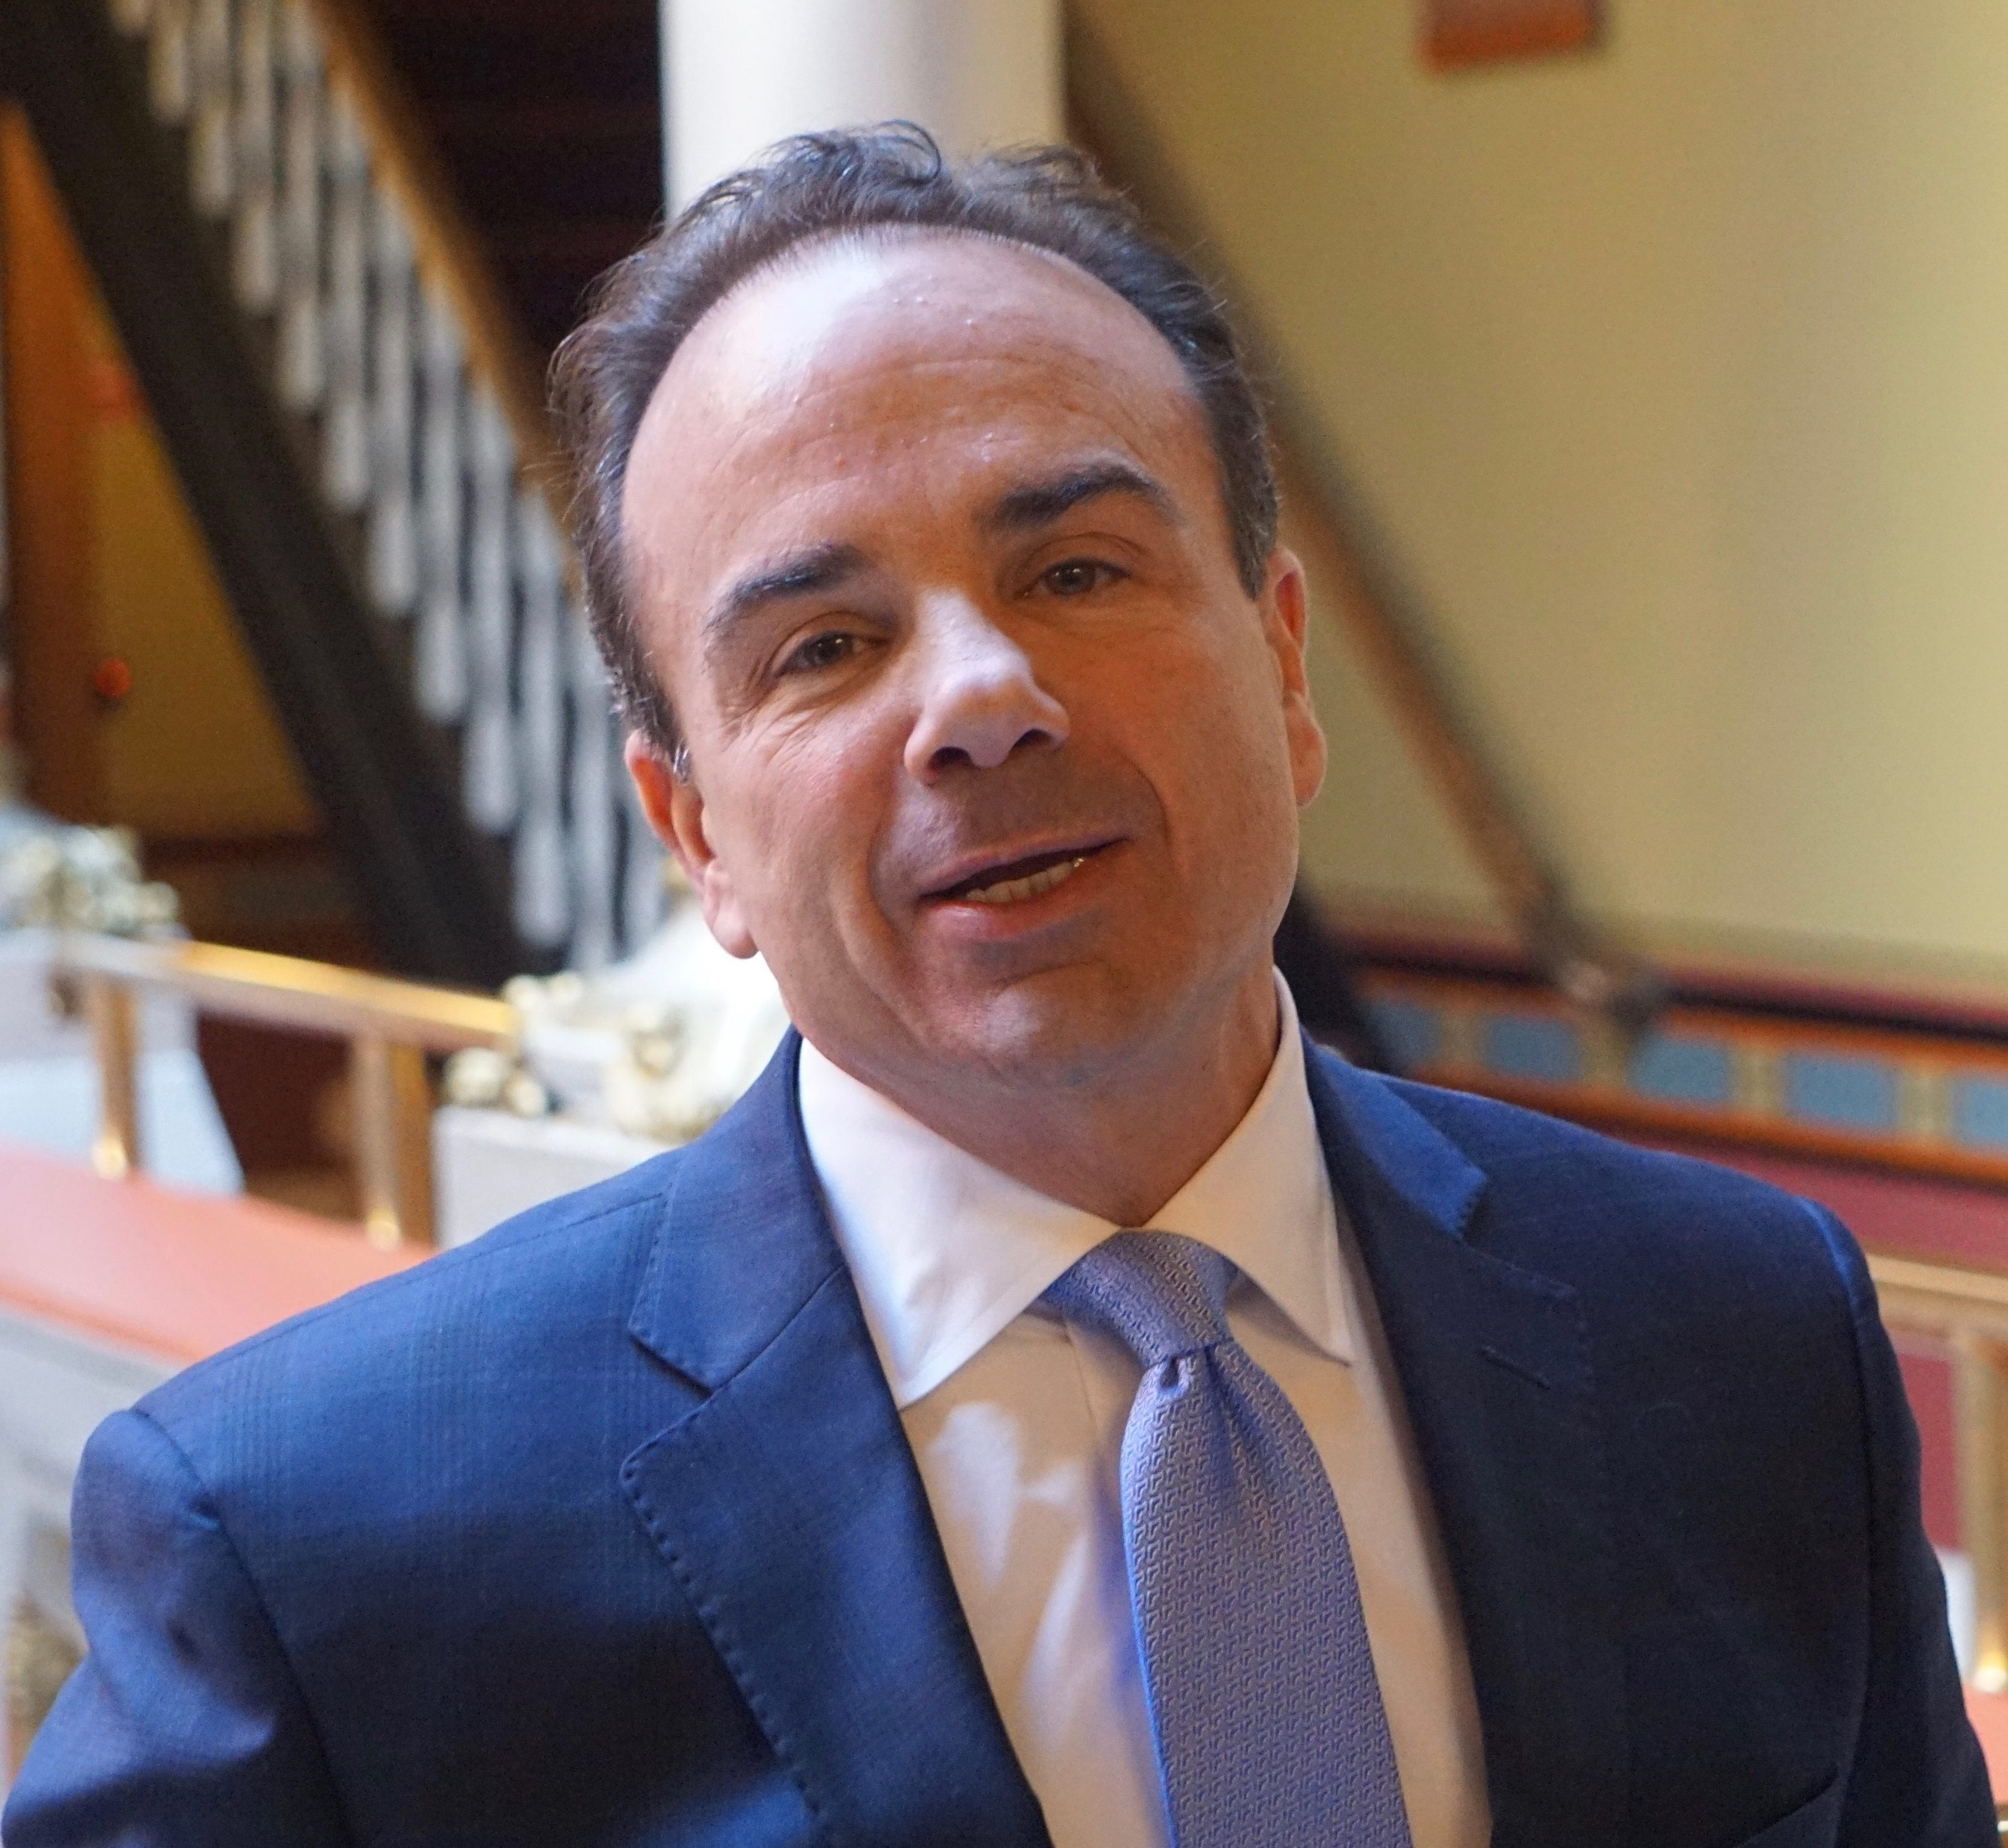 Eight years out of prison, Ganim says he's ready to be governor